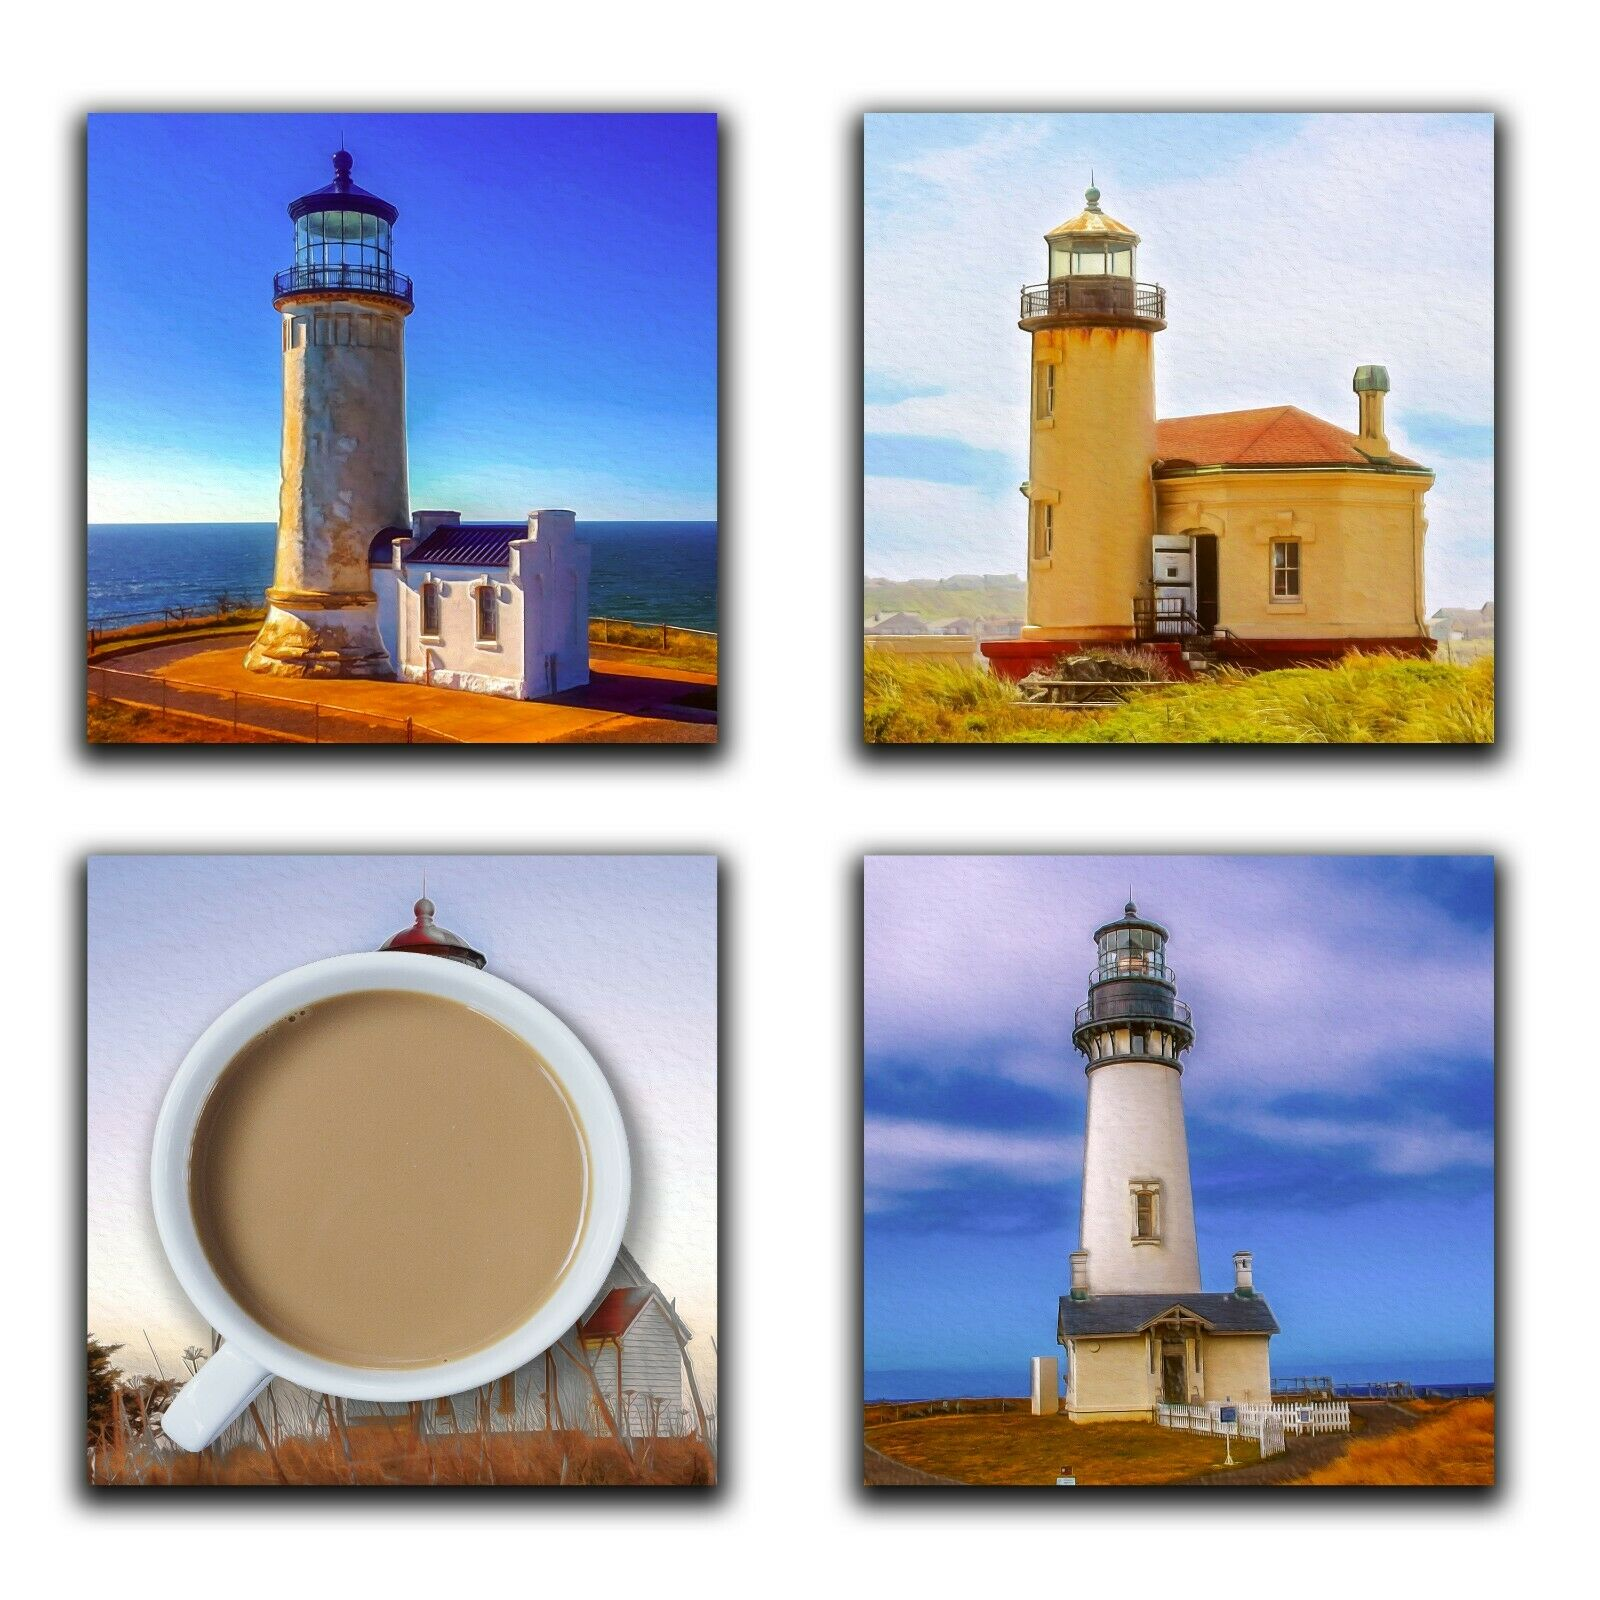 Embossi Printed Oregon Lighthouses, wood or ceramic tile, set of 4 Coasters